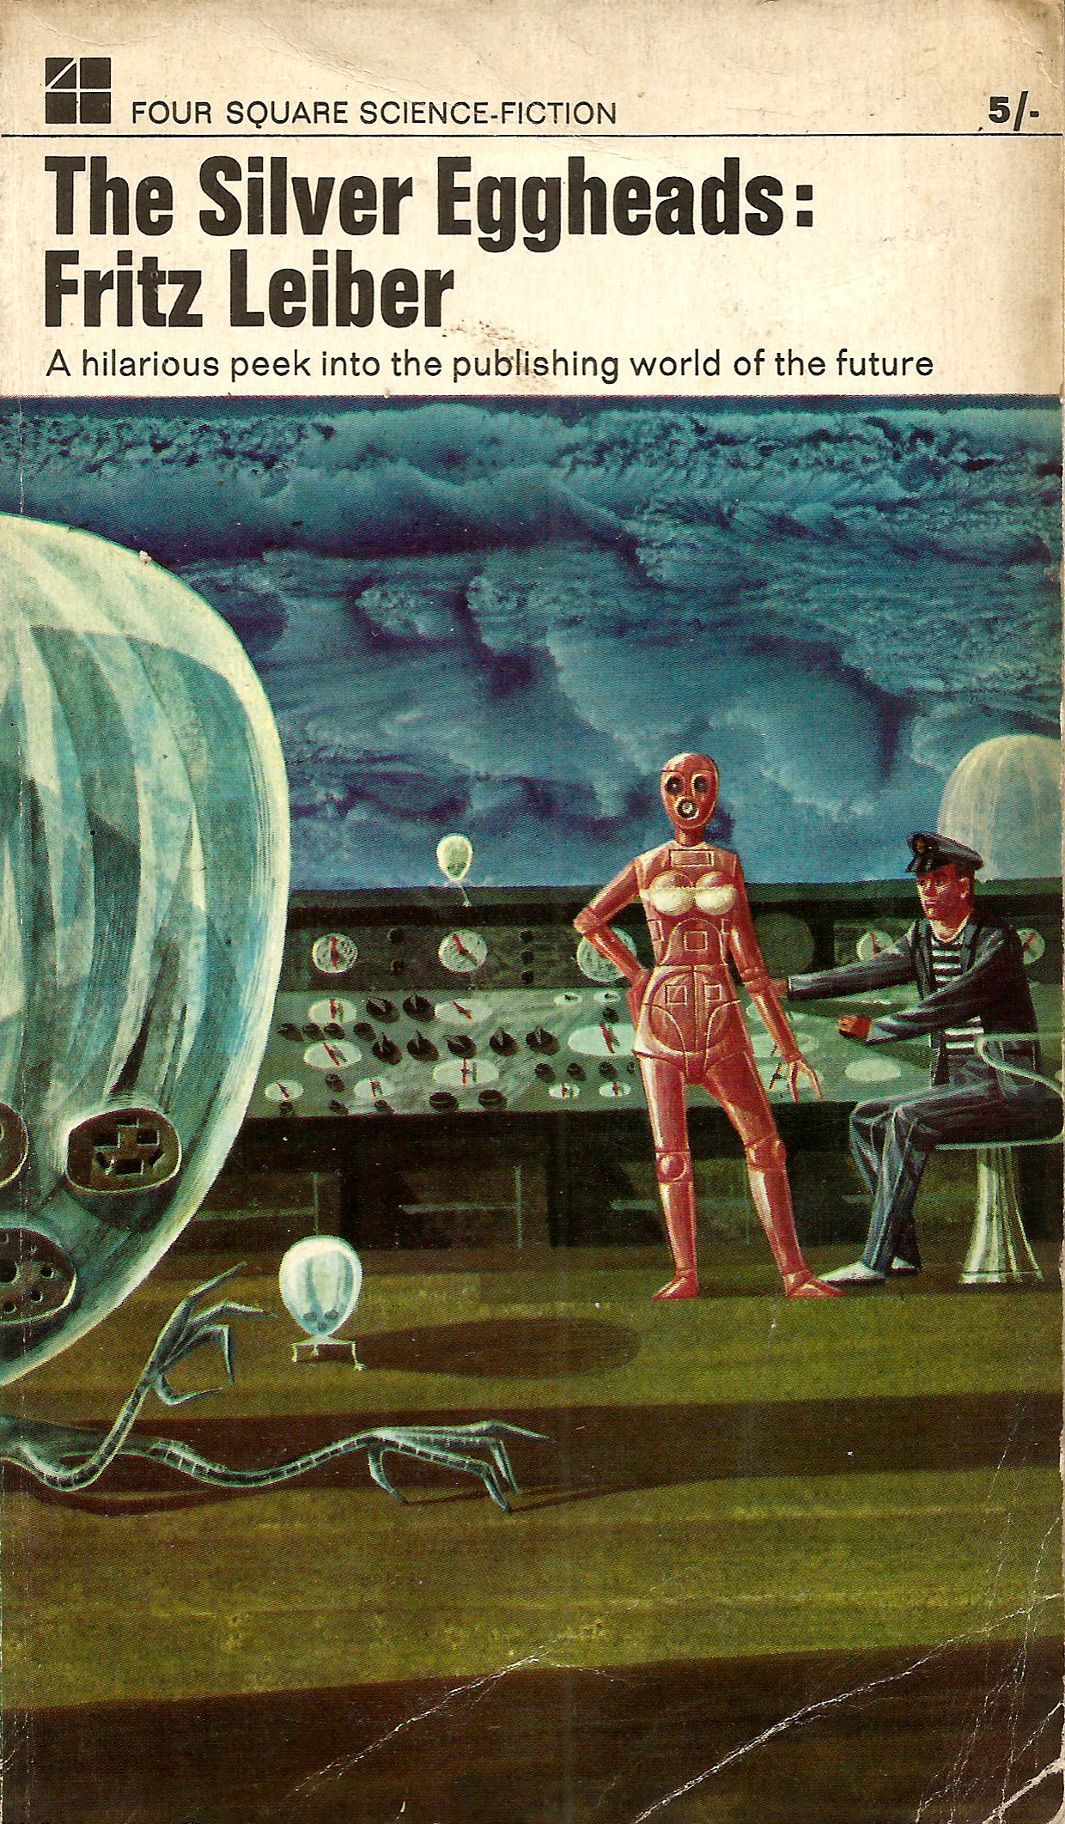 Astounding Science Fiction. August 1952 | Pulp science